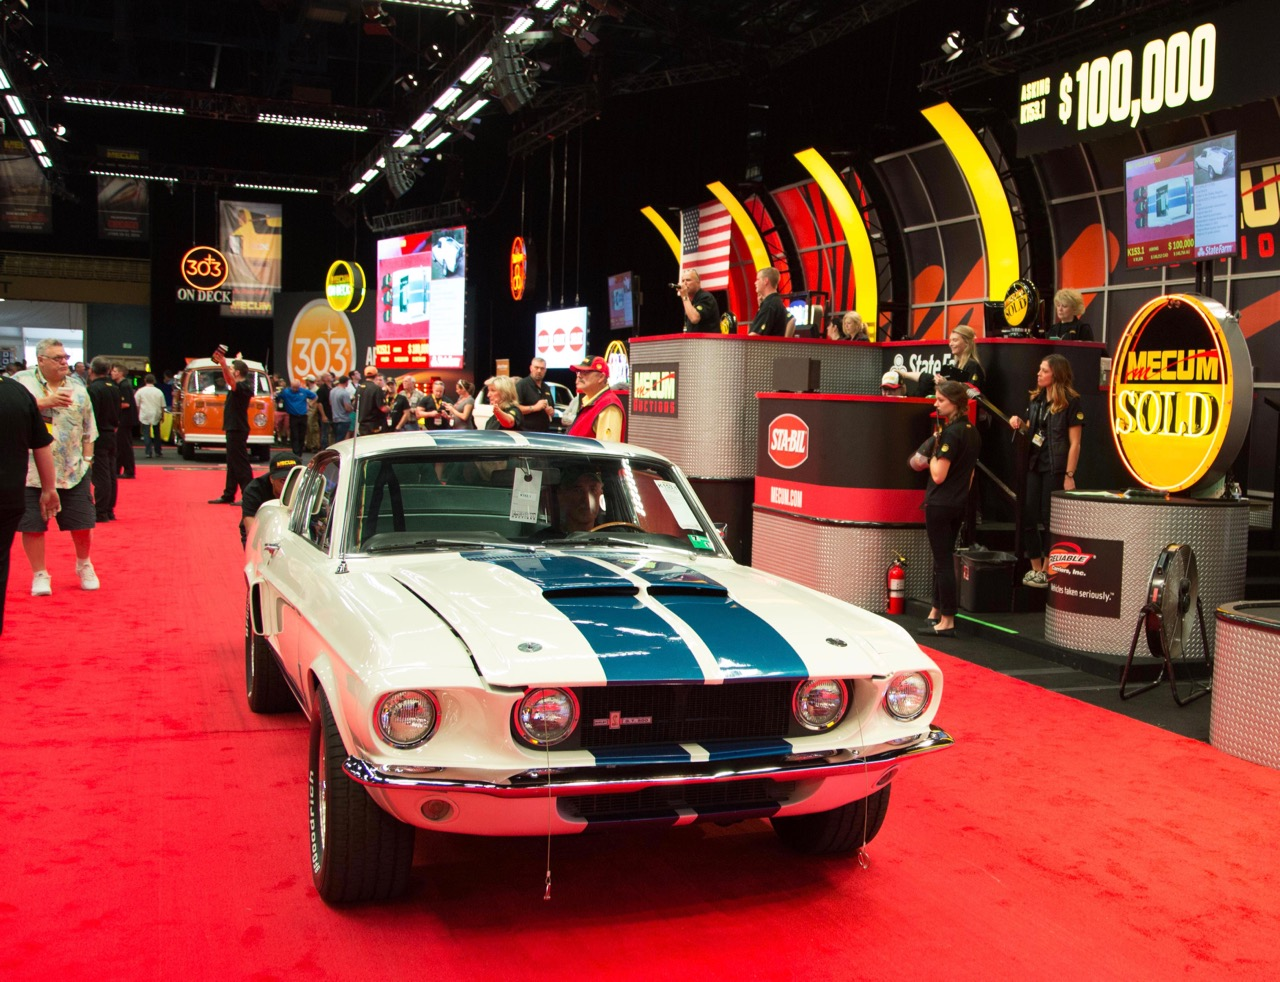 1967 Shelby GT500 sells for $100,000